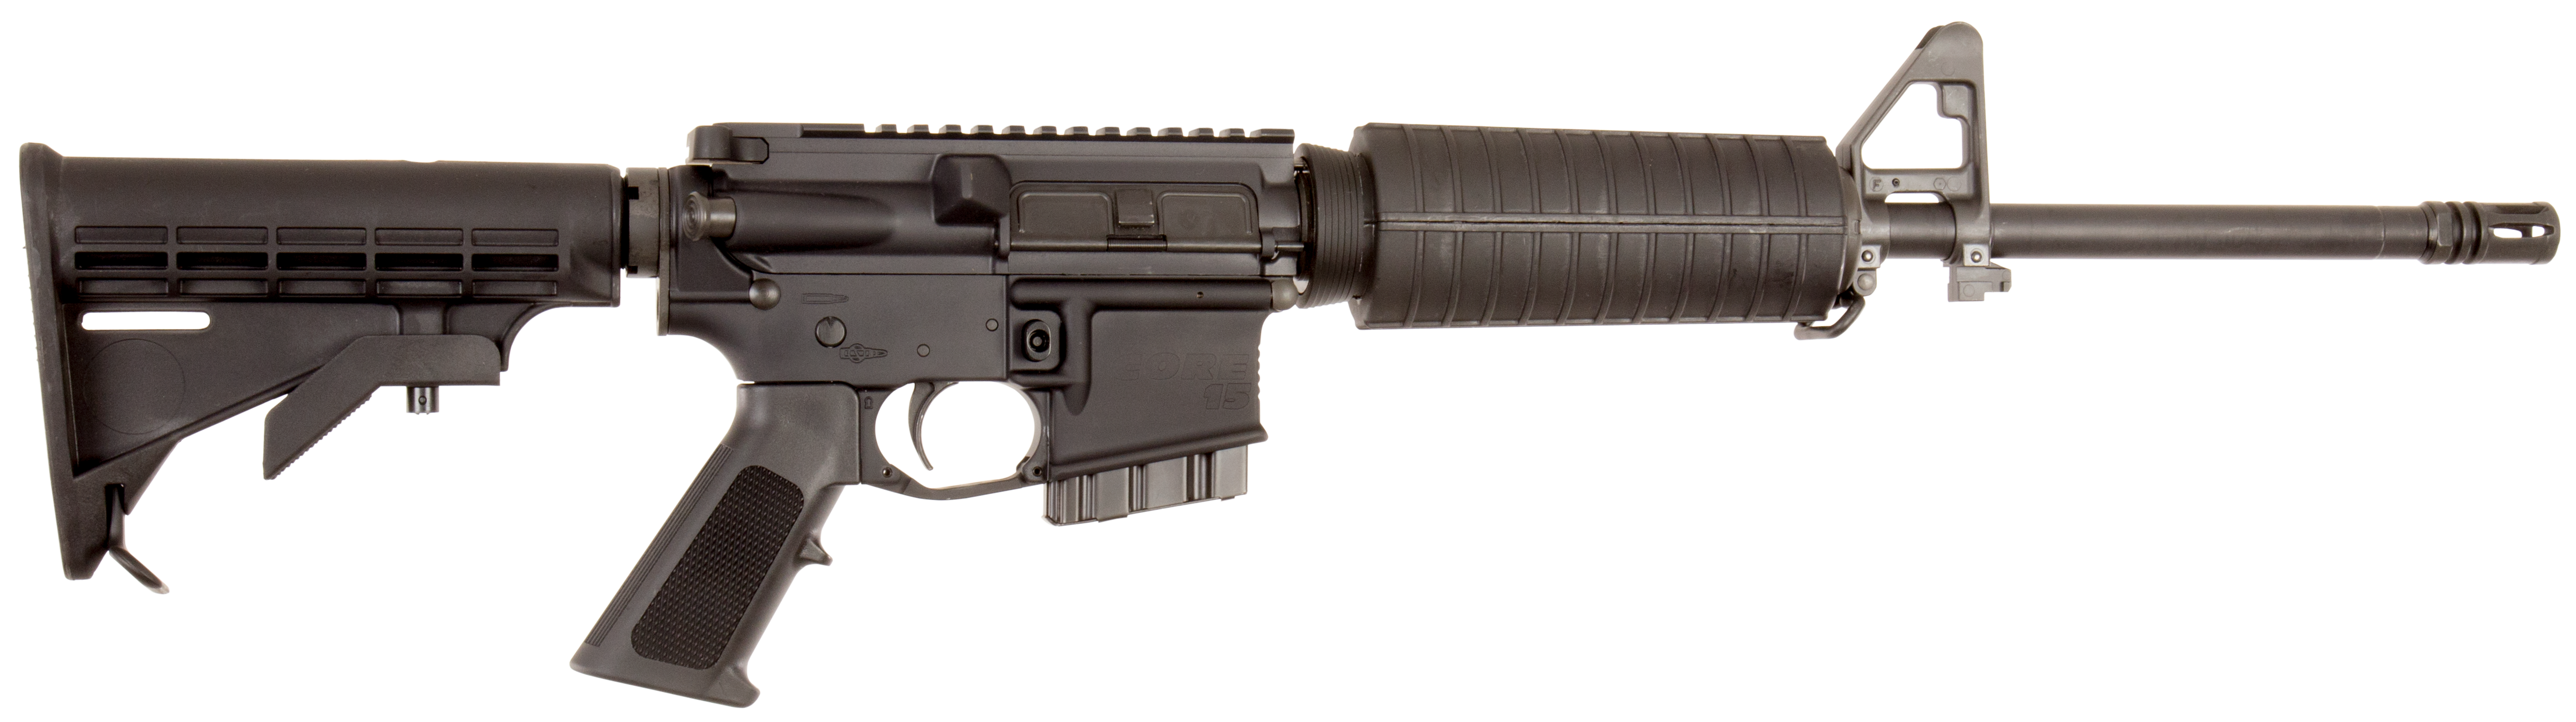 Core 15 Rifle Systems 100425CA Scout M4 *CA Compliant* Semi-Automatic 223 Remington/5.56 NATO 16